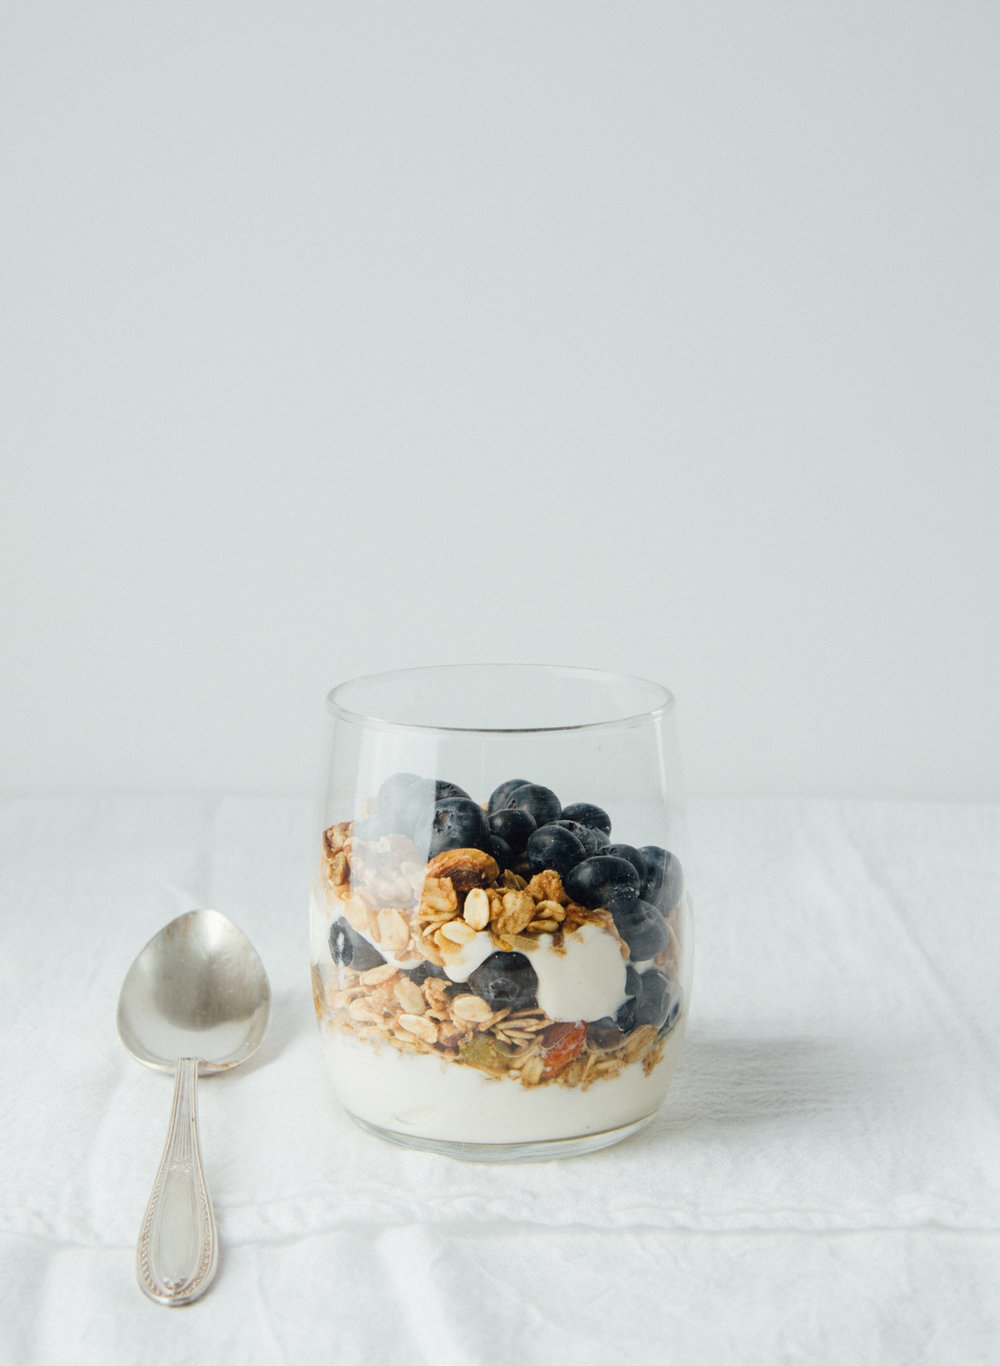 Yogurt, berries and handmade  Go Nuts Granola  from  True North  / Photo:  Melissa DiPalma